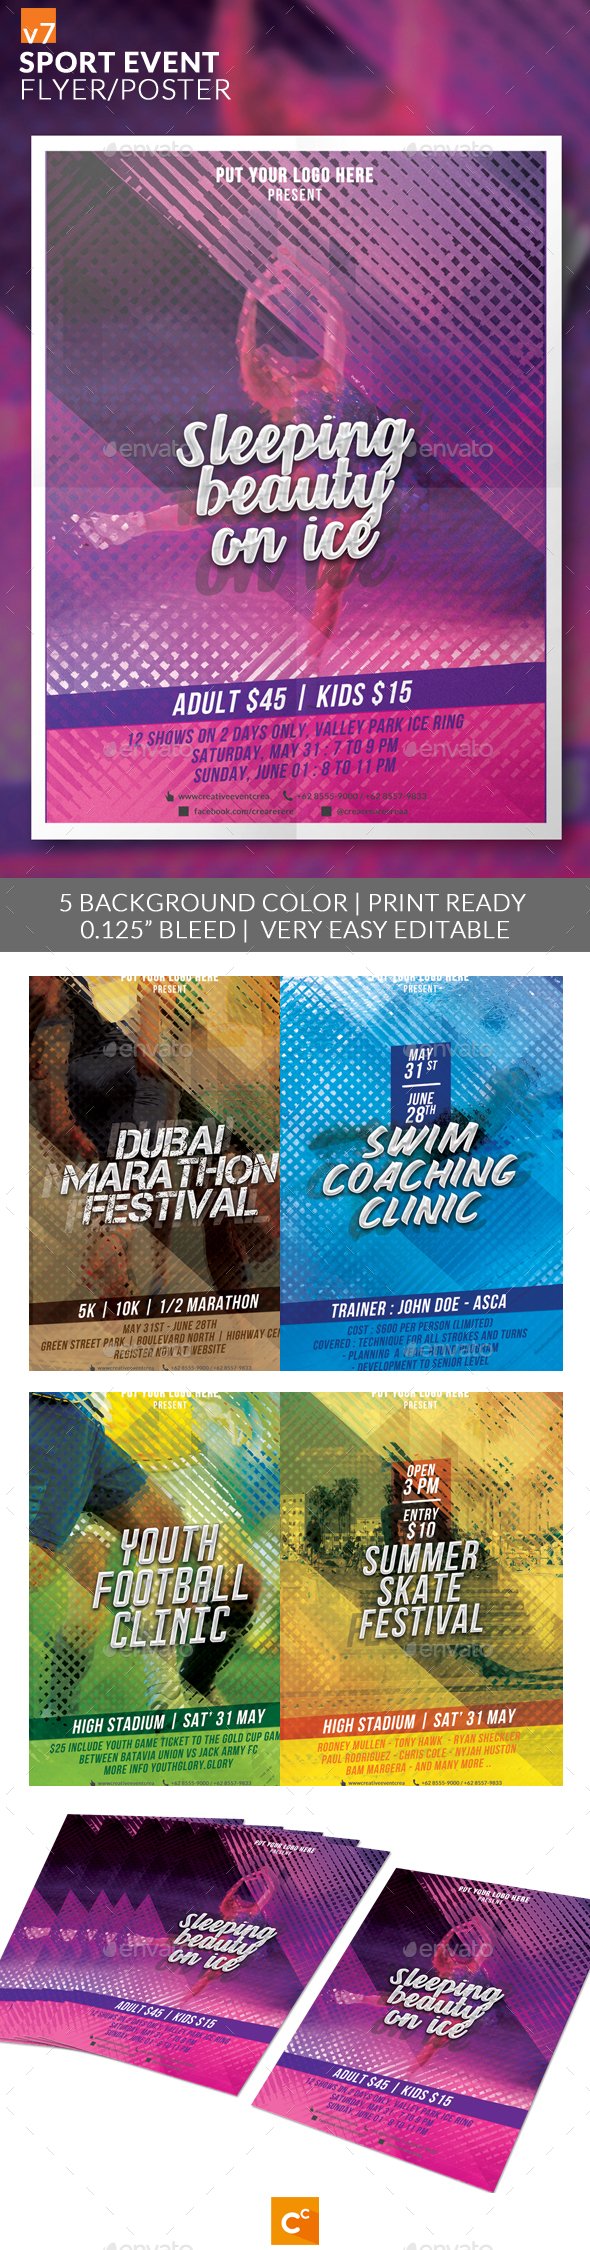 Sport Event Flyer/Poster v7 - Sports Events